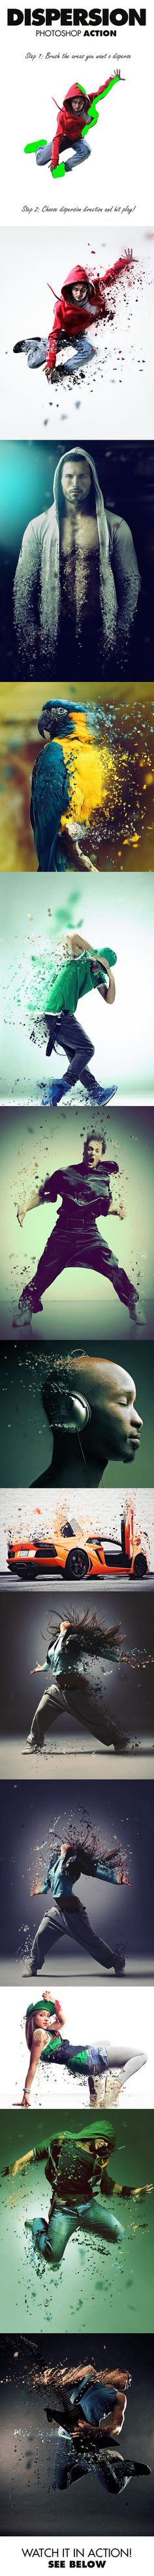 Dispersion Photoshop Action - Photo Effects Actions Photography Editing Digital Painting Tutorial Lightroom, Photoshop Effekte, Photoshop Illustrator, Photoshop Tutorial, Photoshop Projects, Photoshop Elements, Photoshop Photography, Photography Tutorials, Digital Photography